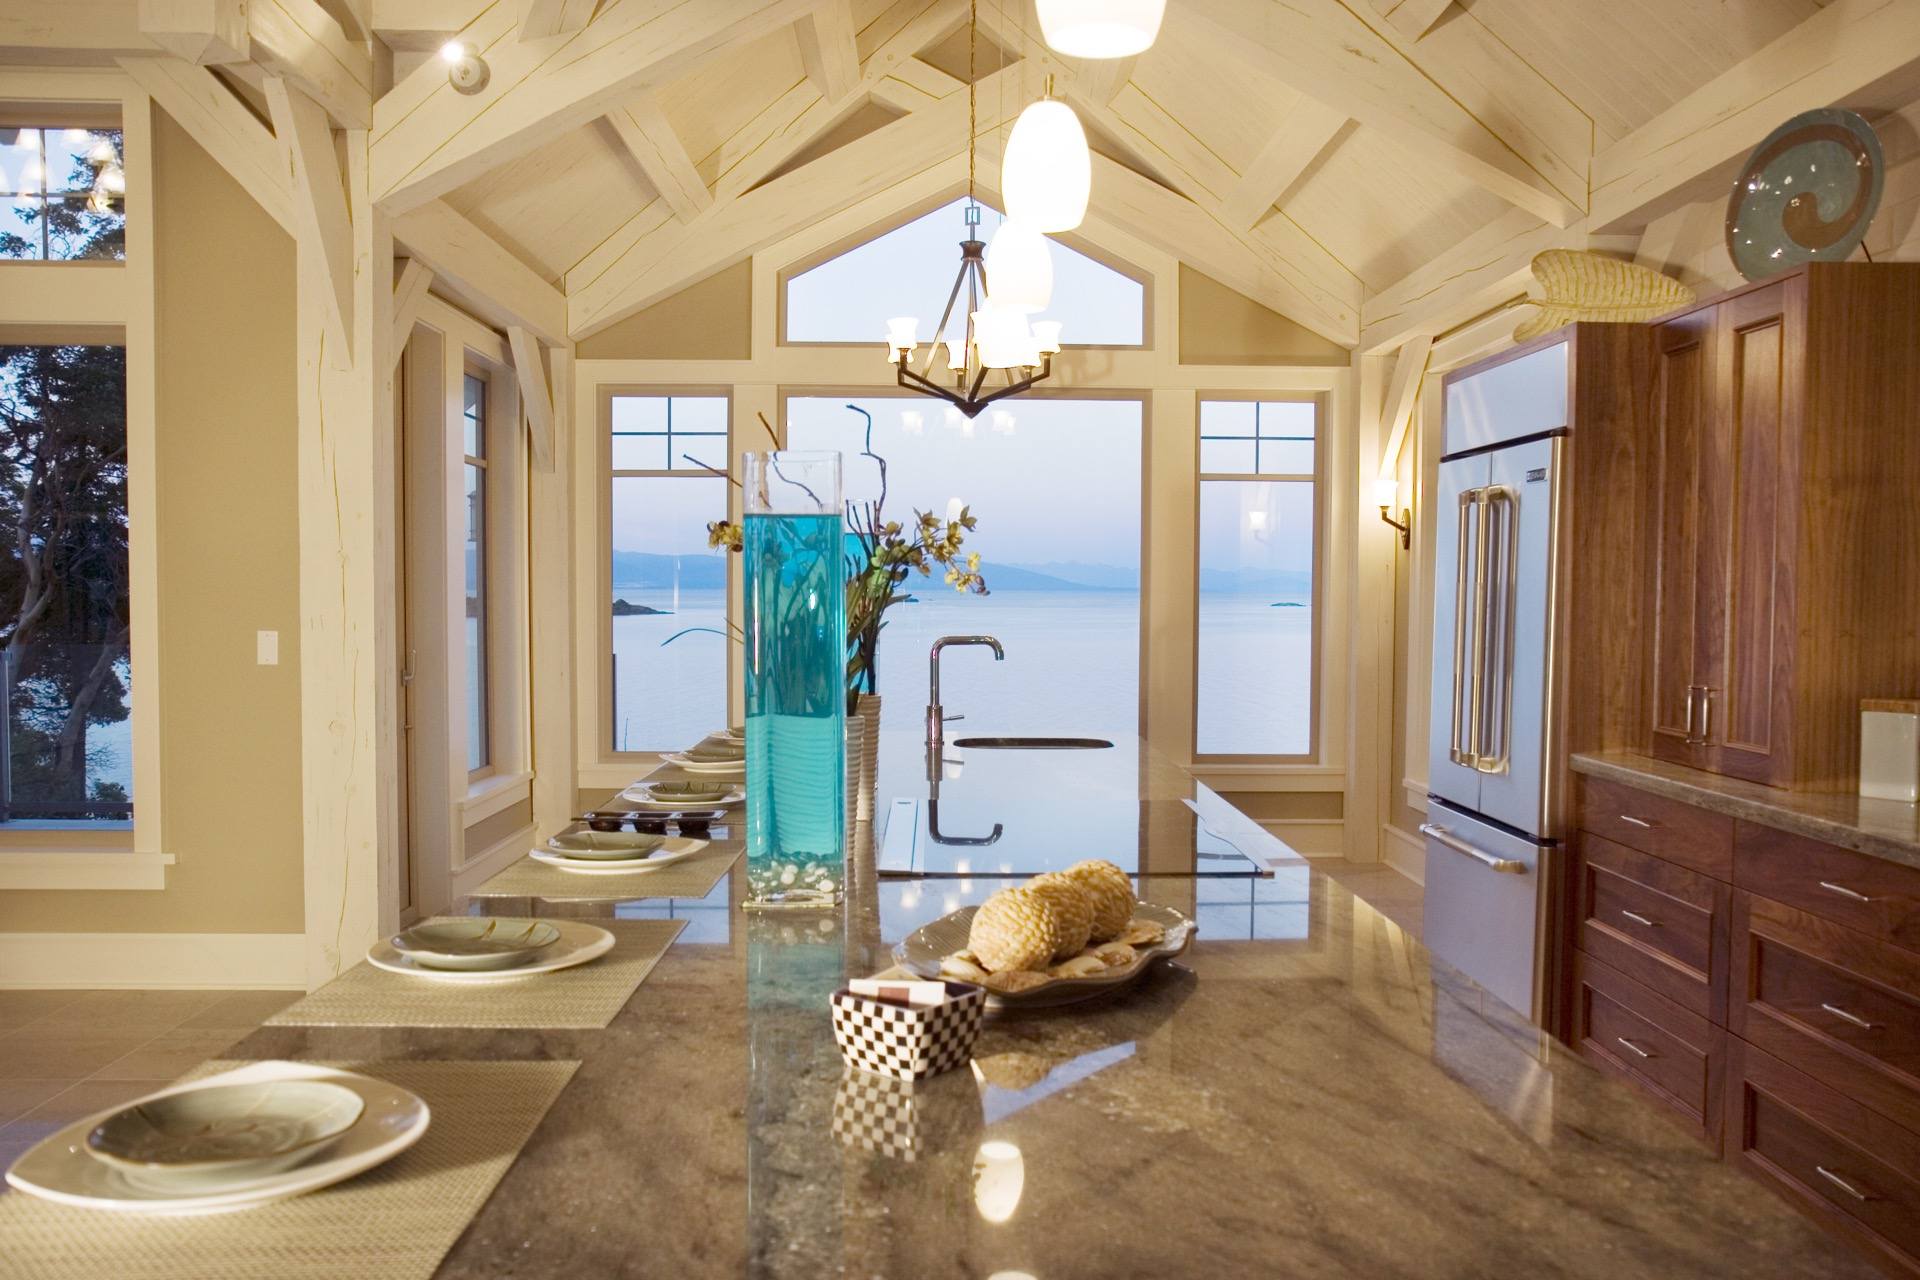 Paul Dabbs Custom Homes - Dolphin 99.jpg